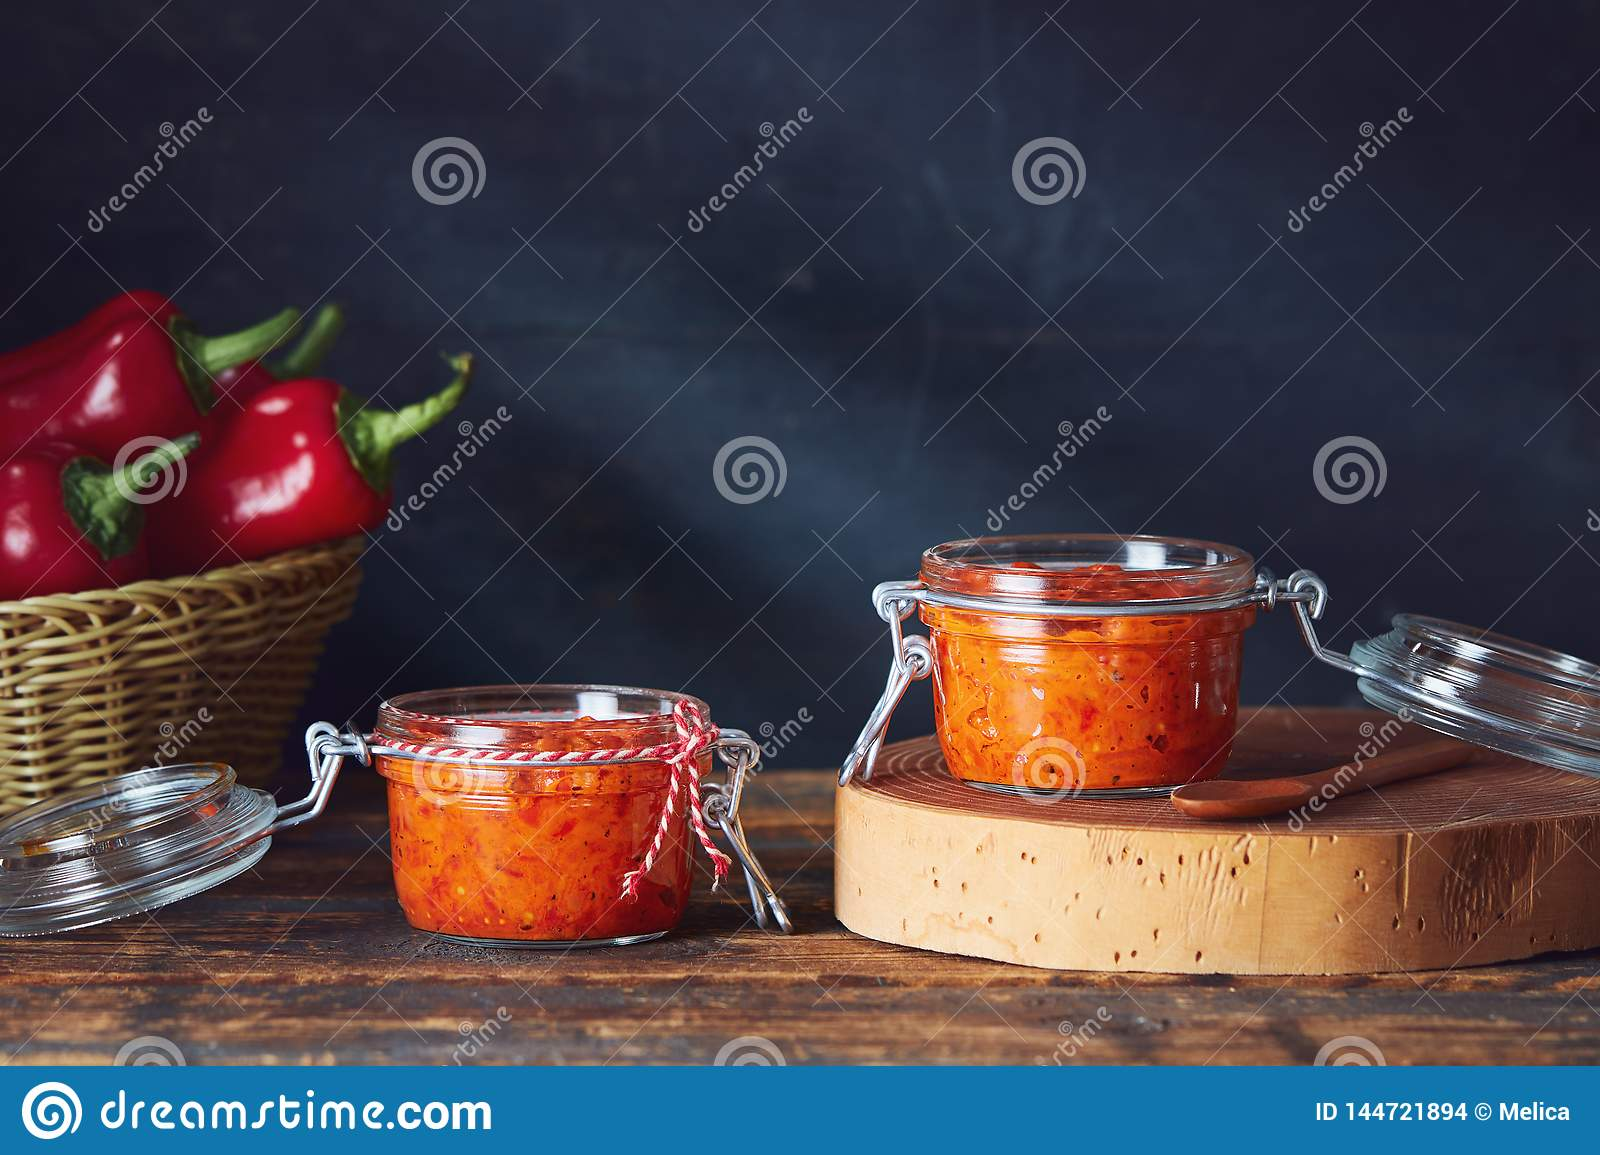 Roasted Red Pepper Relish Ajvar